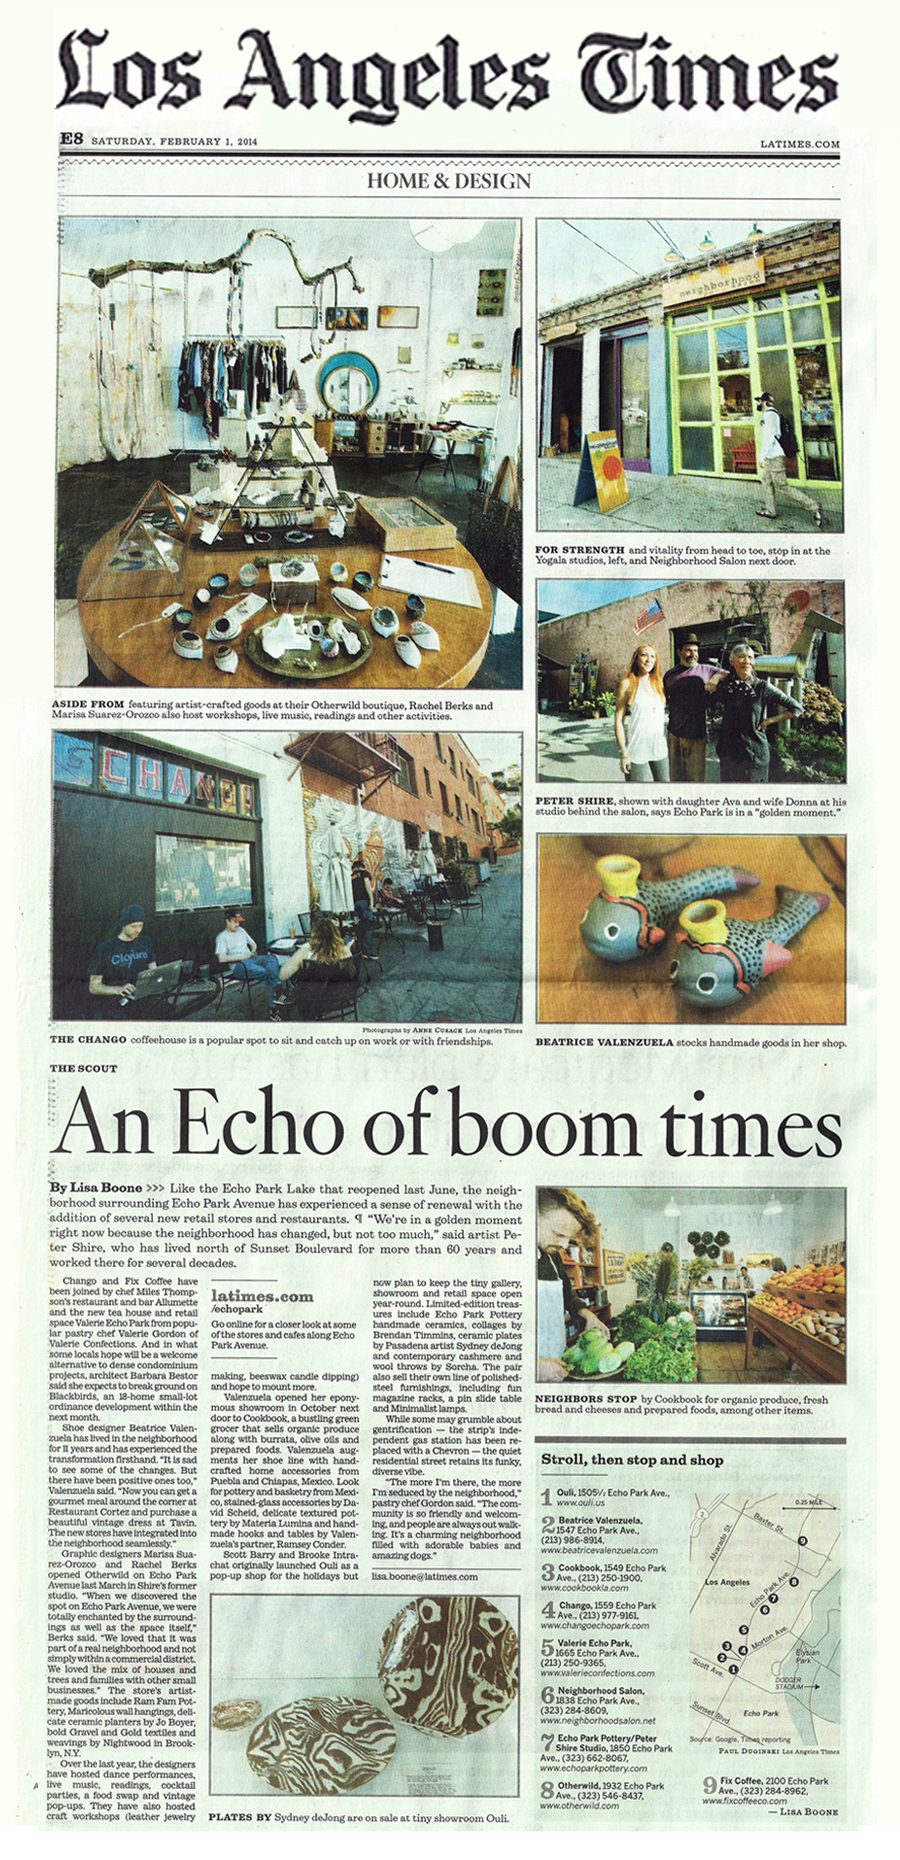 LOS ANGELES TIMES   An Echo of Boom Times